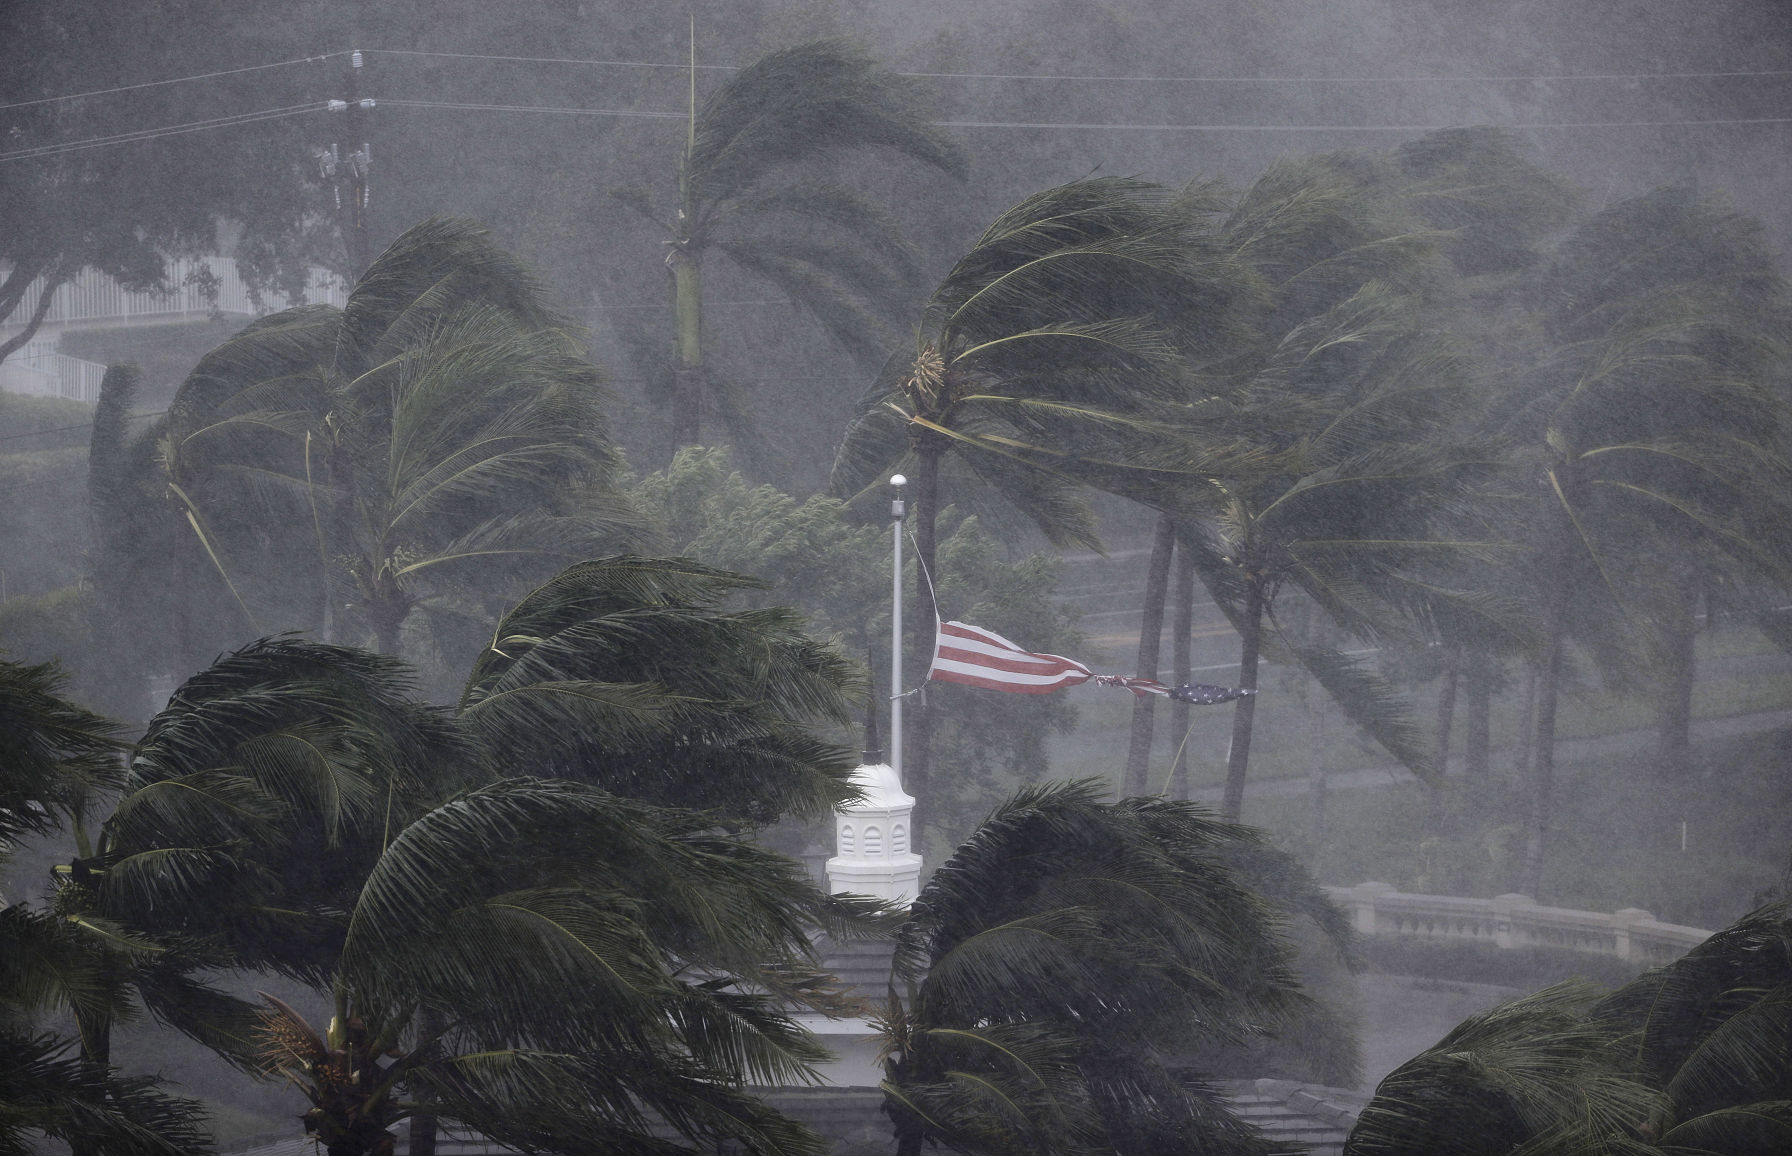 No other state gets hit by hurricanes as often as Florida